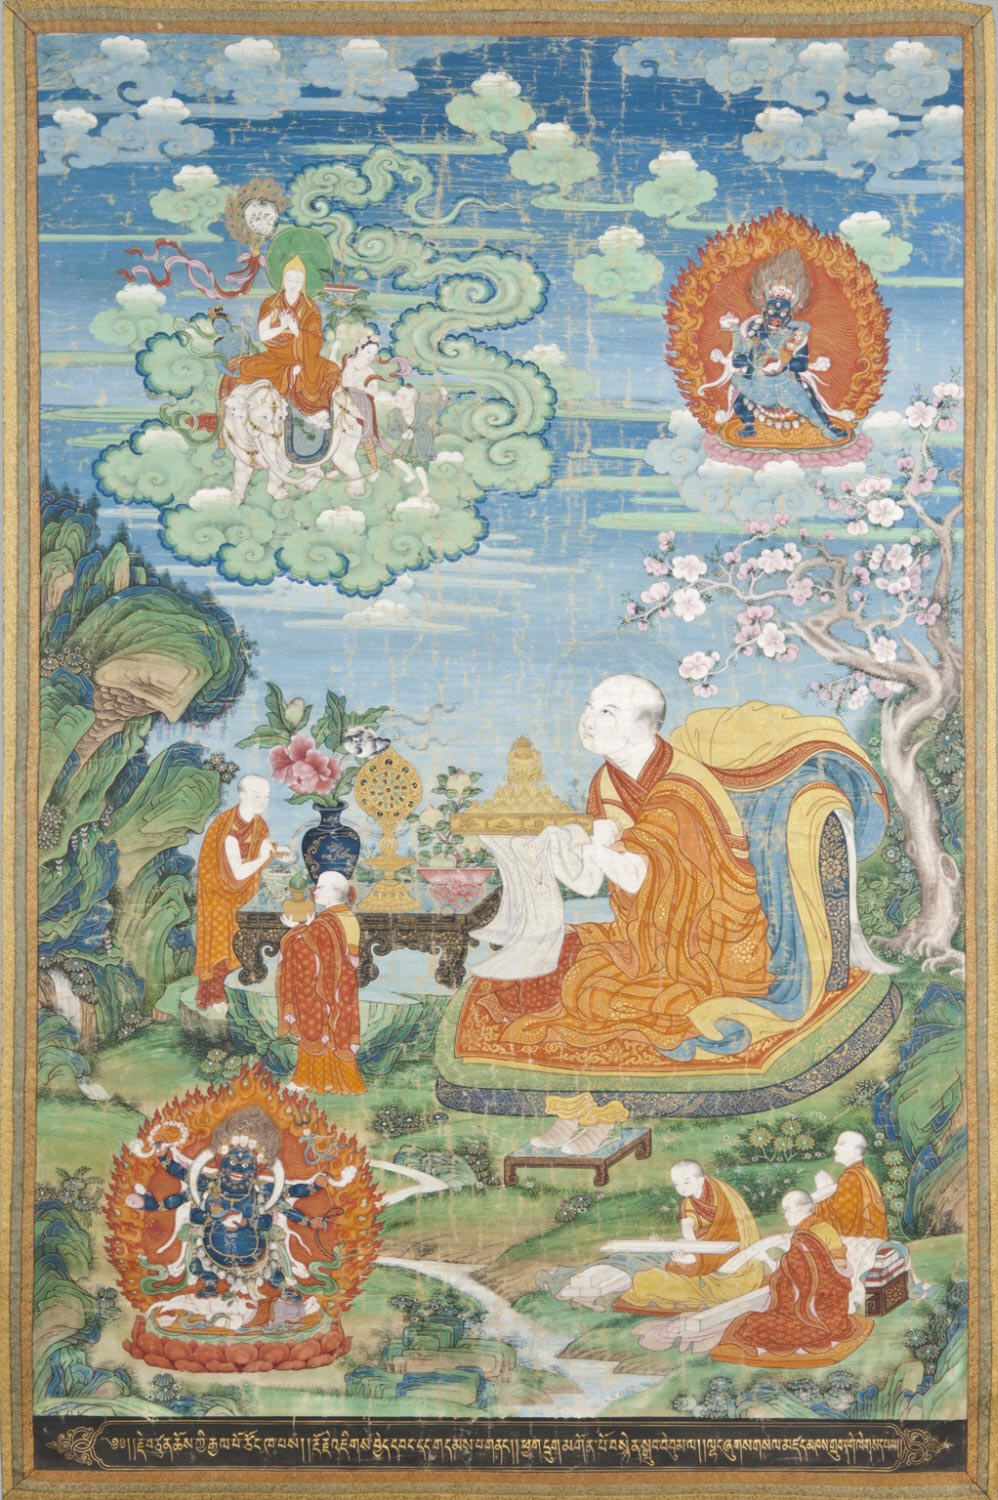 Khedrubje Makes an Offering to Tsongkhapa